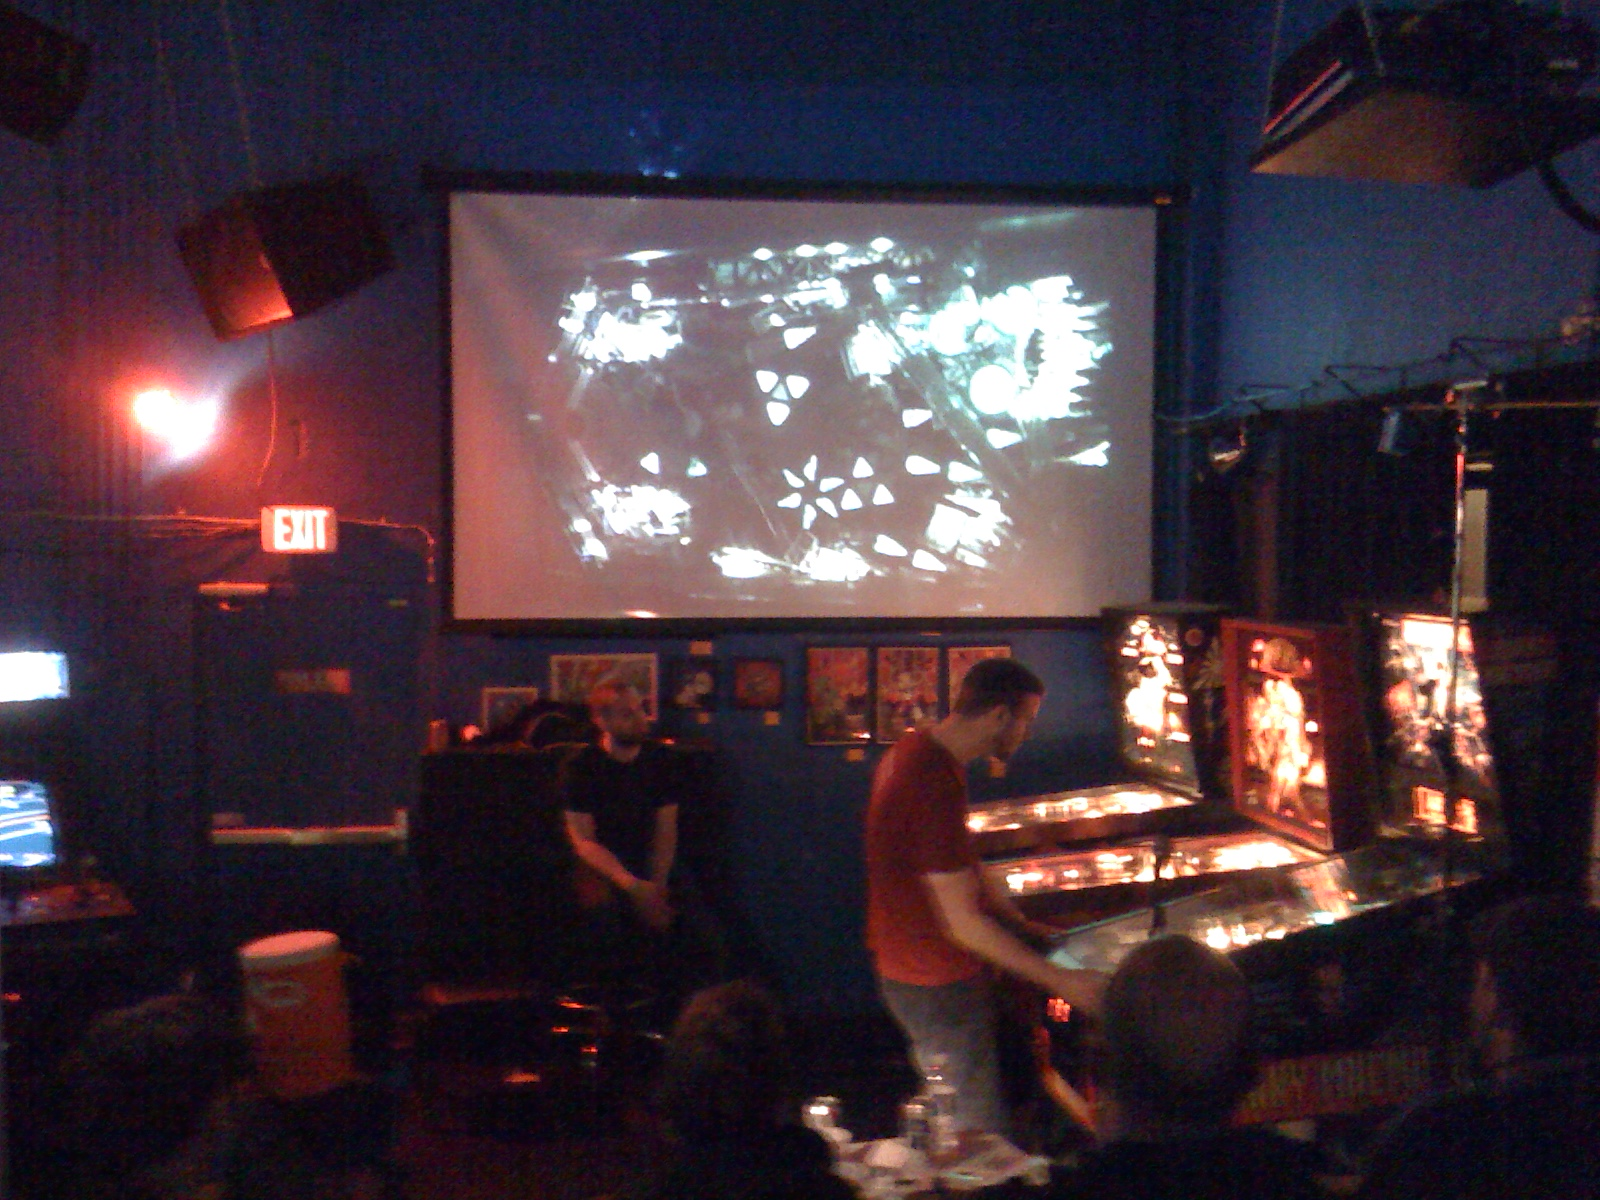 Last year's final between Opto and the eventual winner, Deathsave.